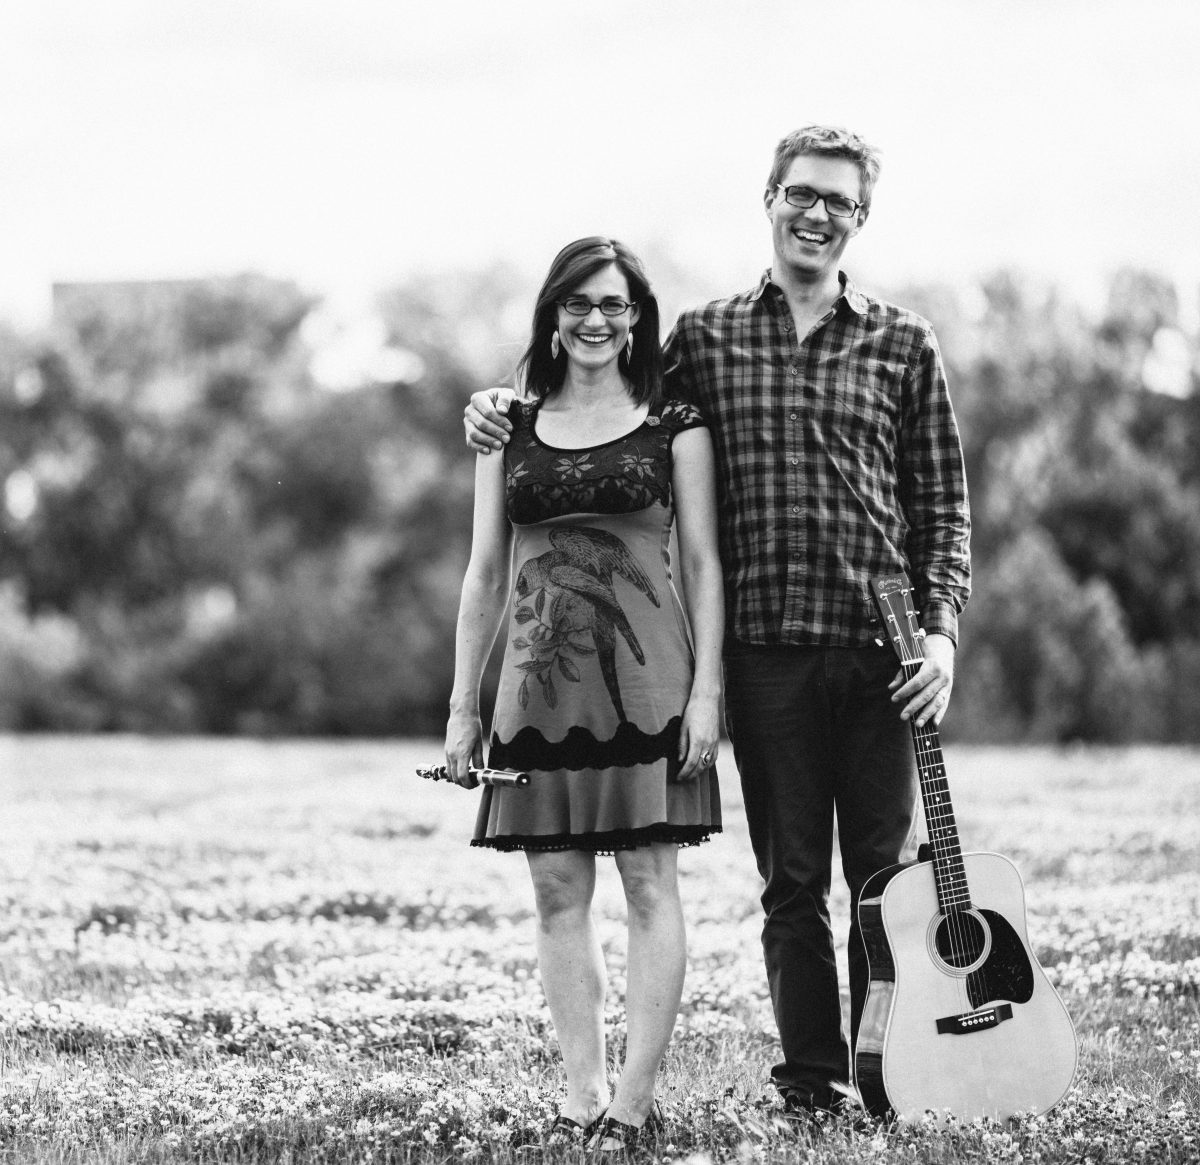 Norah Rendell and Brian Miller in Concert